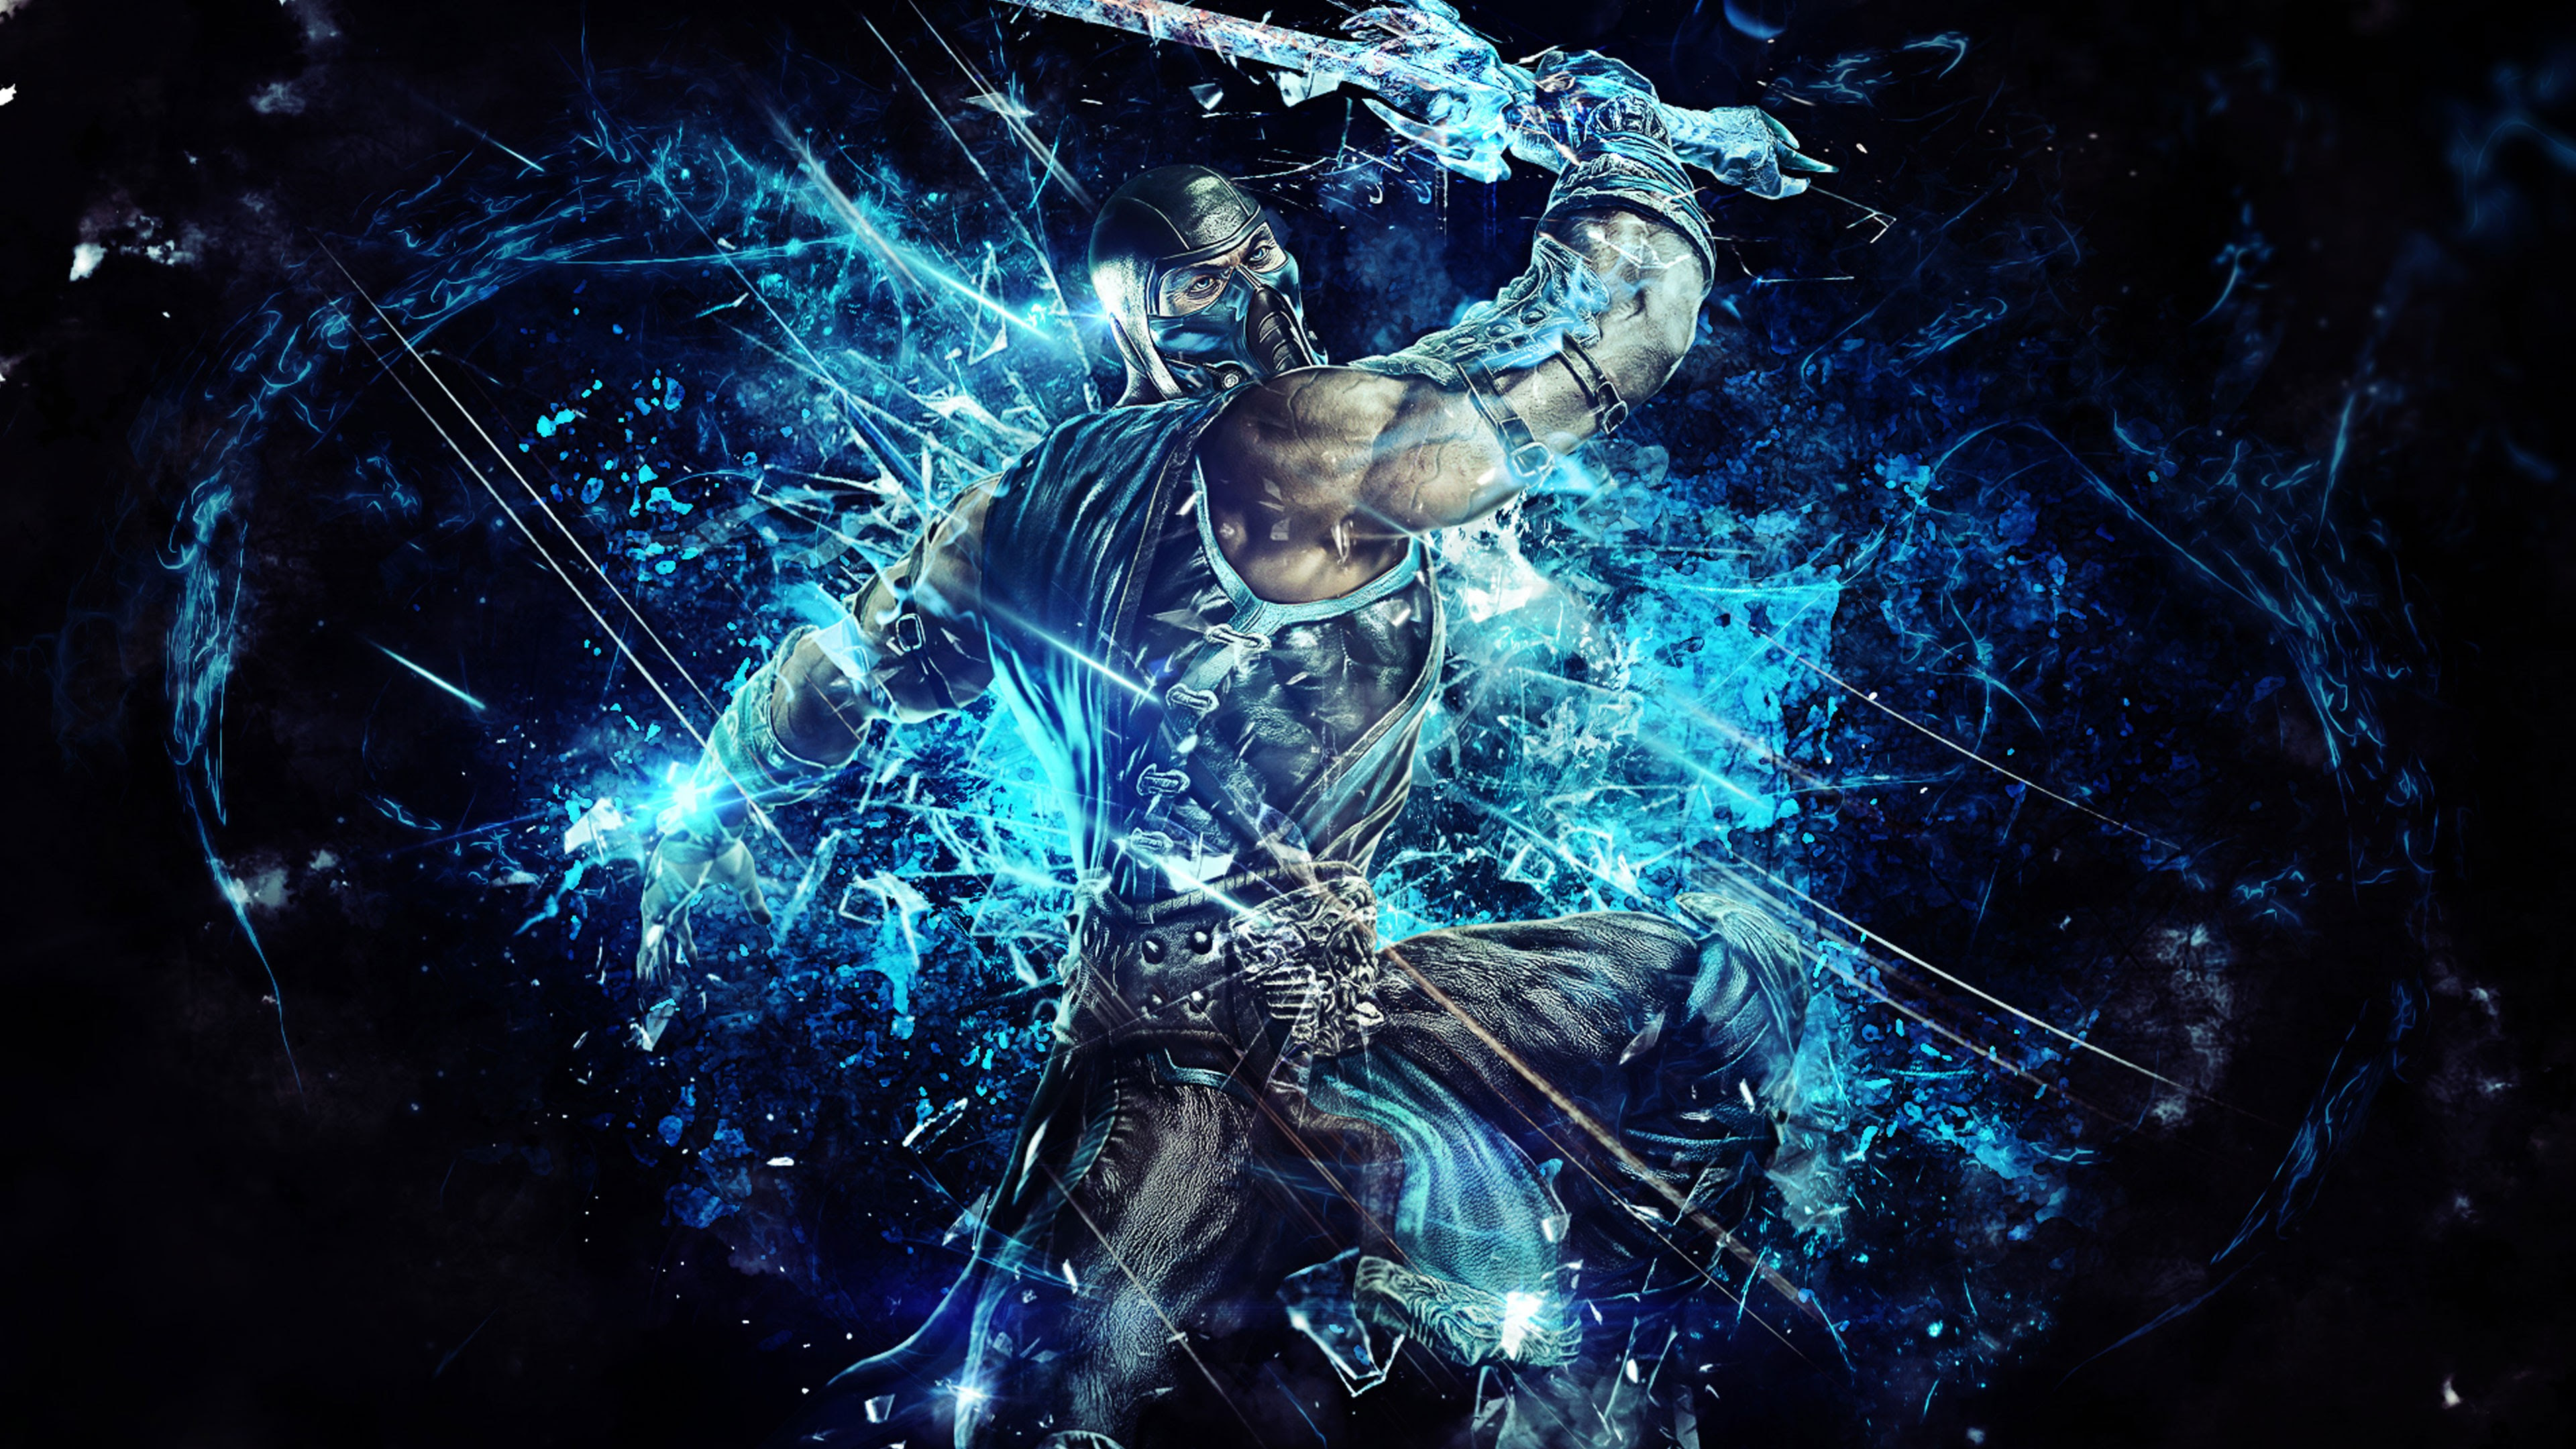 Sub Zero Mortal Kombat Wallpapers Hd Desktop And Mobile Backgrounds